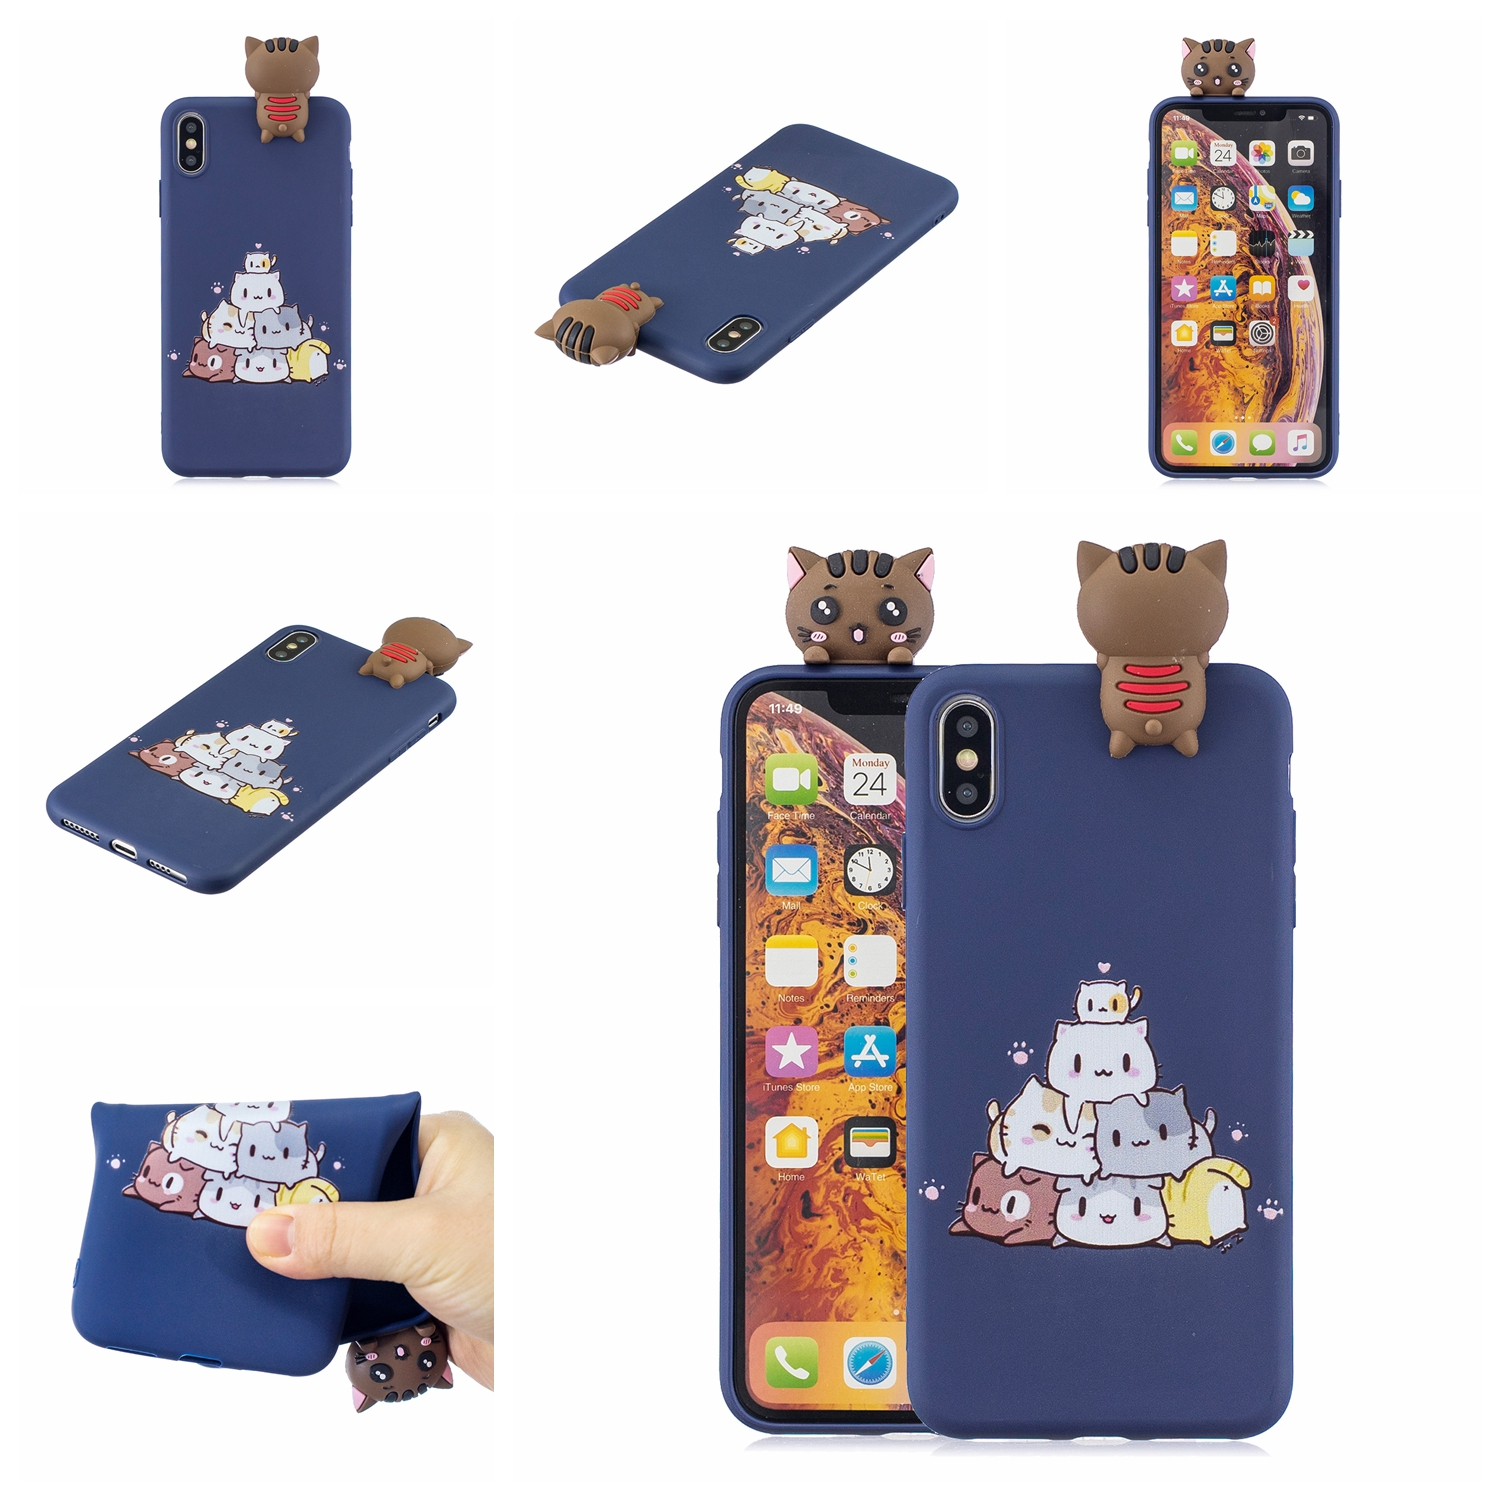 For VIVO V7 plus/Y75S/Y79/Y73 3D Cartoon Lovely Coloured Painted Soft TPU Back Cover Non-slip Shockproof Full Protective Case sapphire